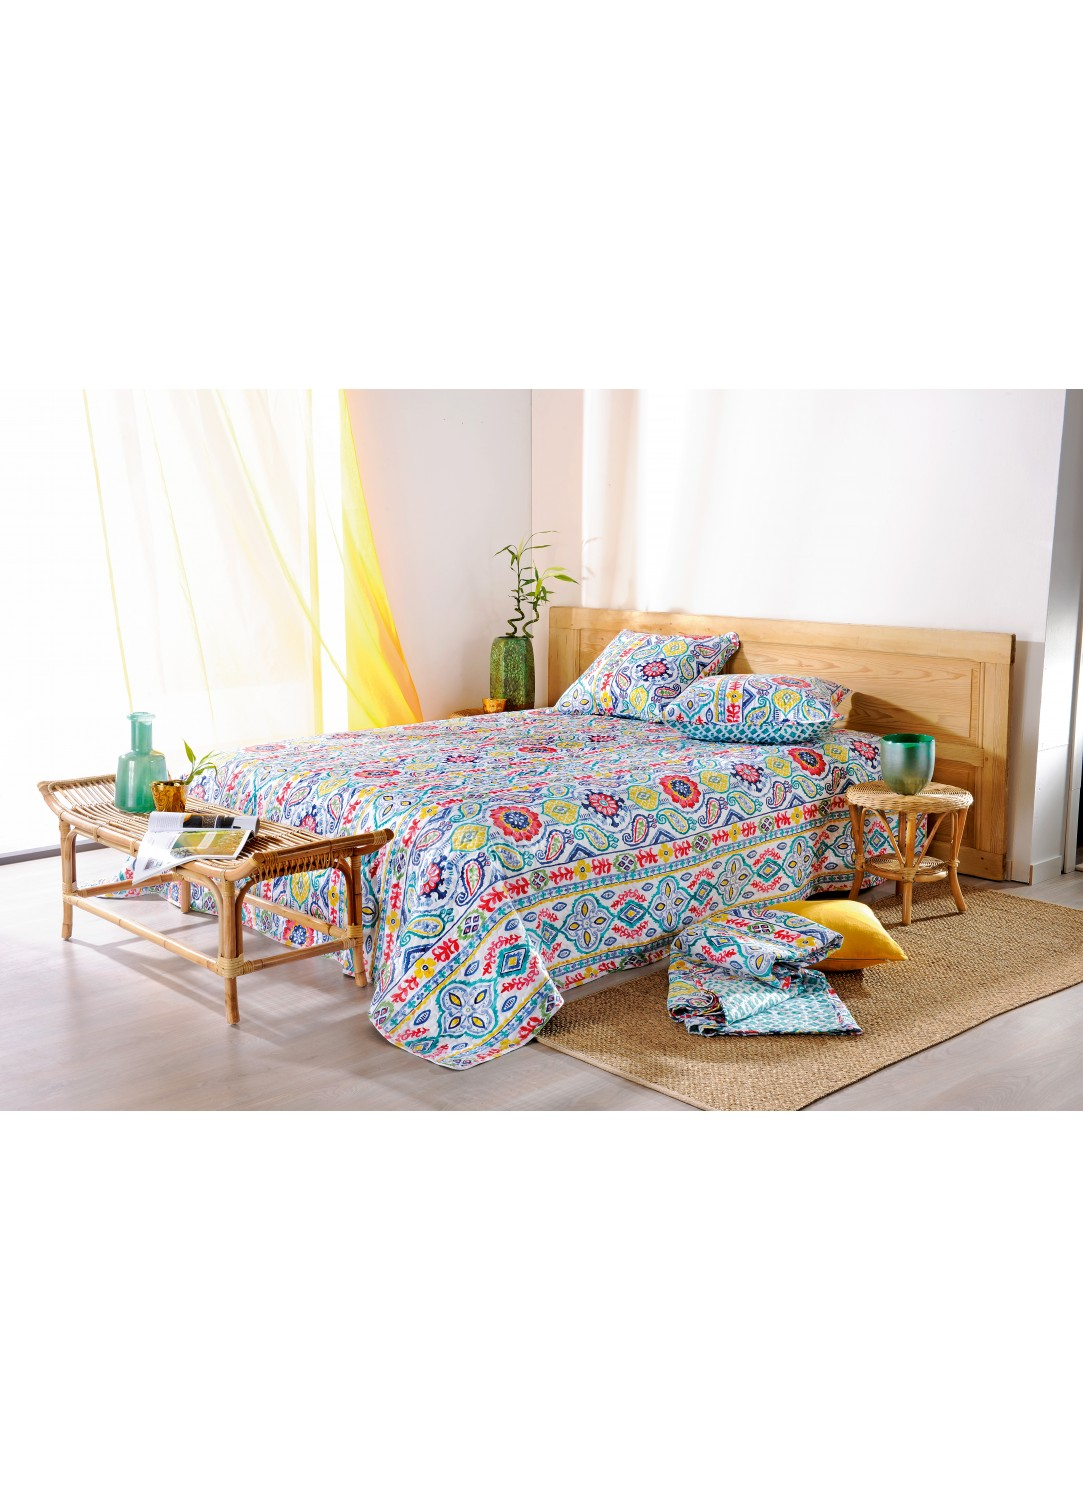 plaid boutis miko multicolore homemaison vente en ligne couvertures et plaids. Black Bedroom Furniture Sets. Home Design Ideas